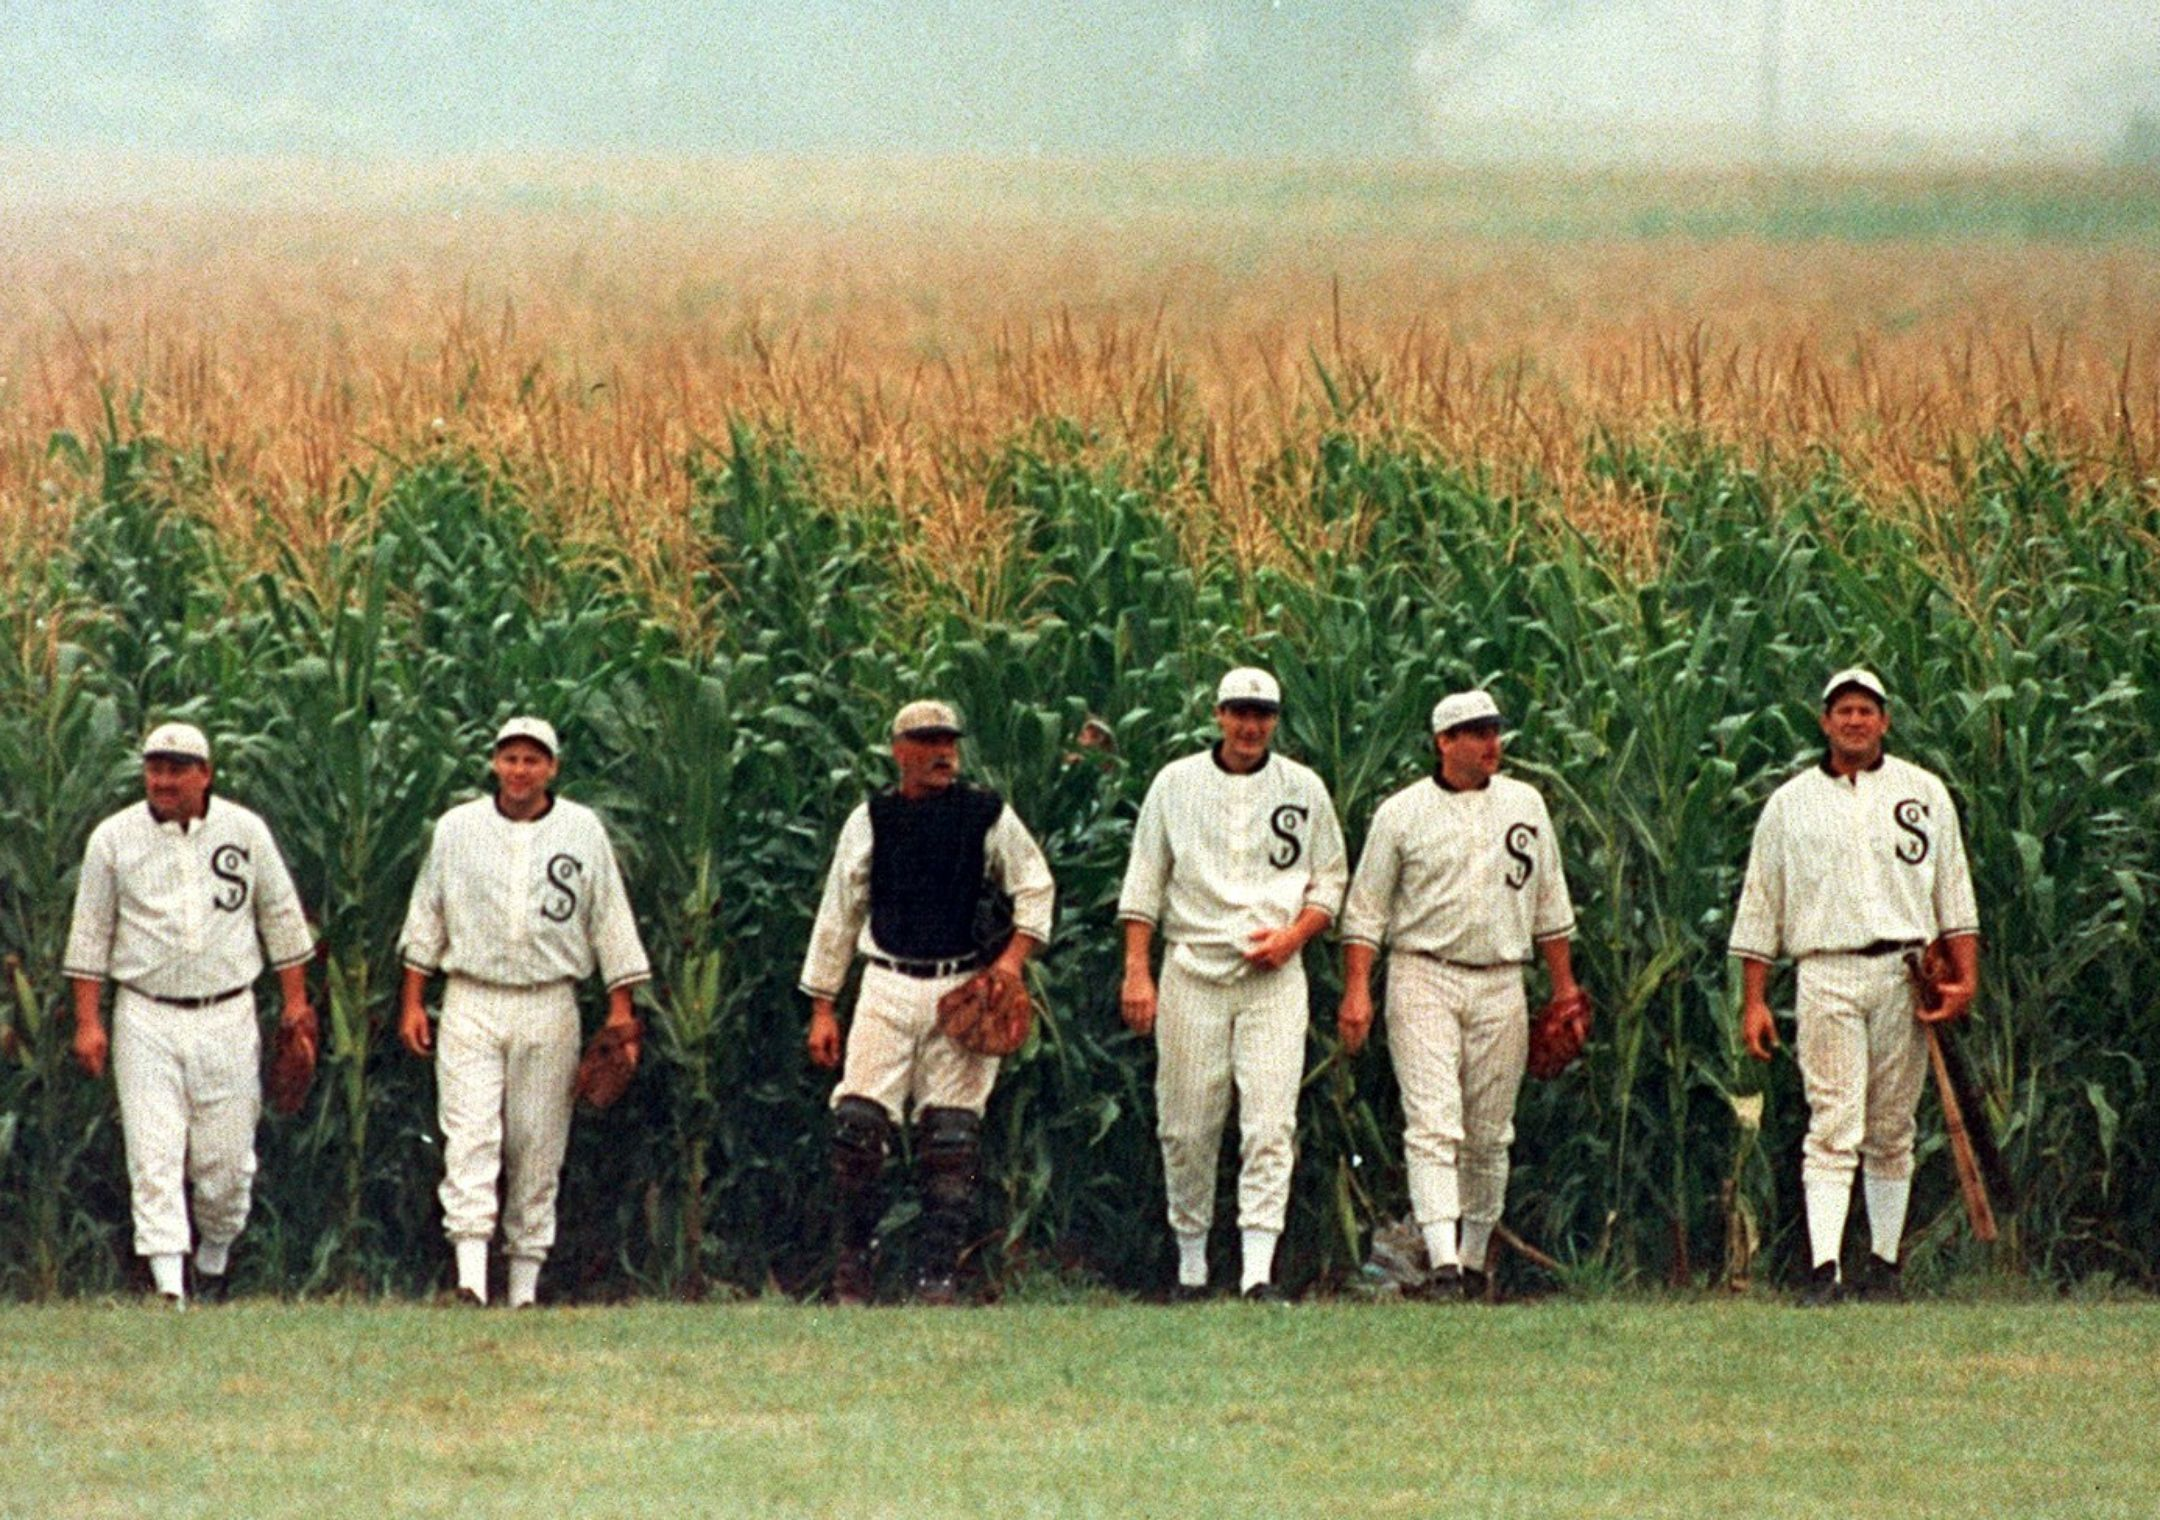 The Best Movies About Baseball Baseball Movies Field Of Dreams Sports Movie